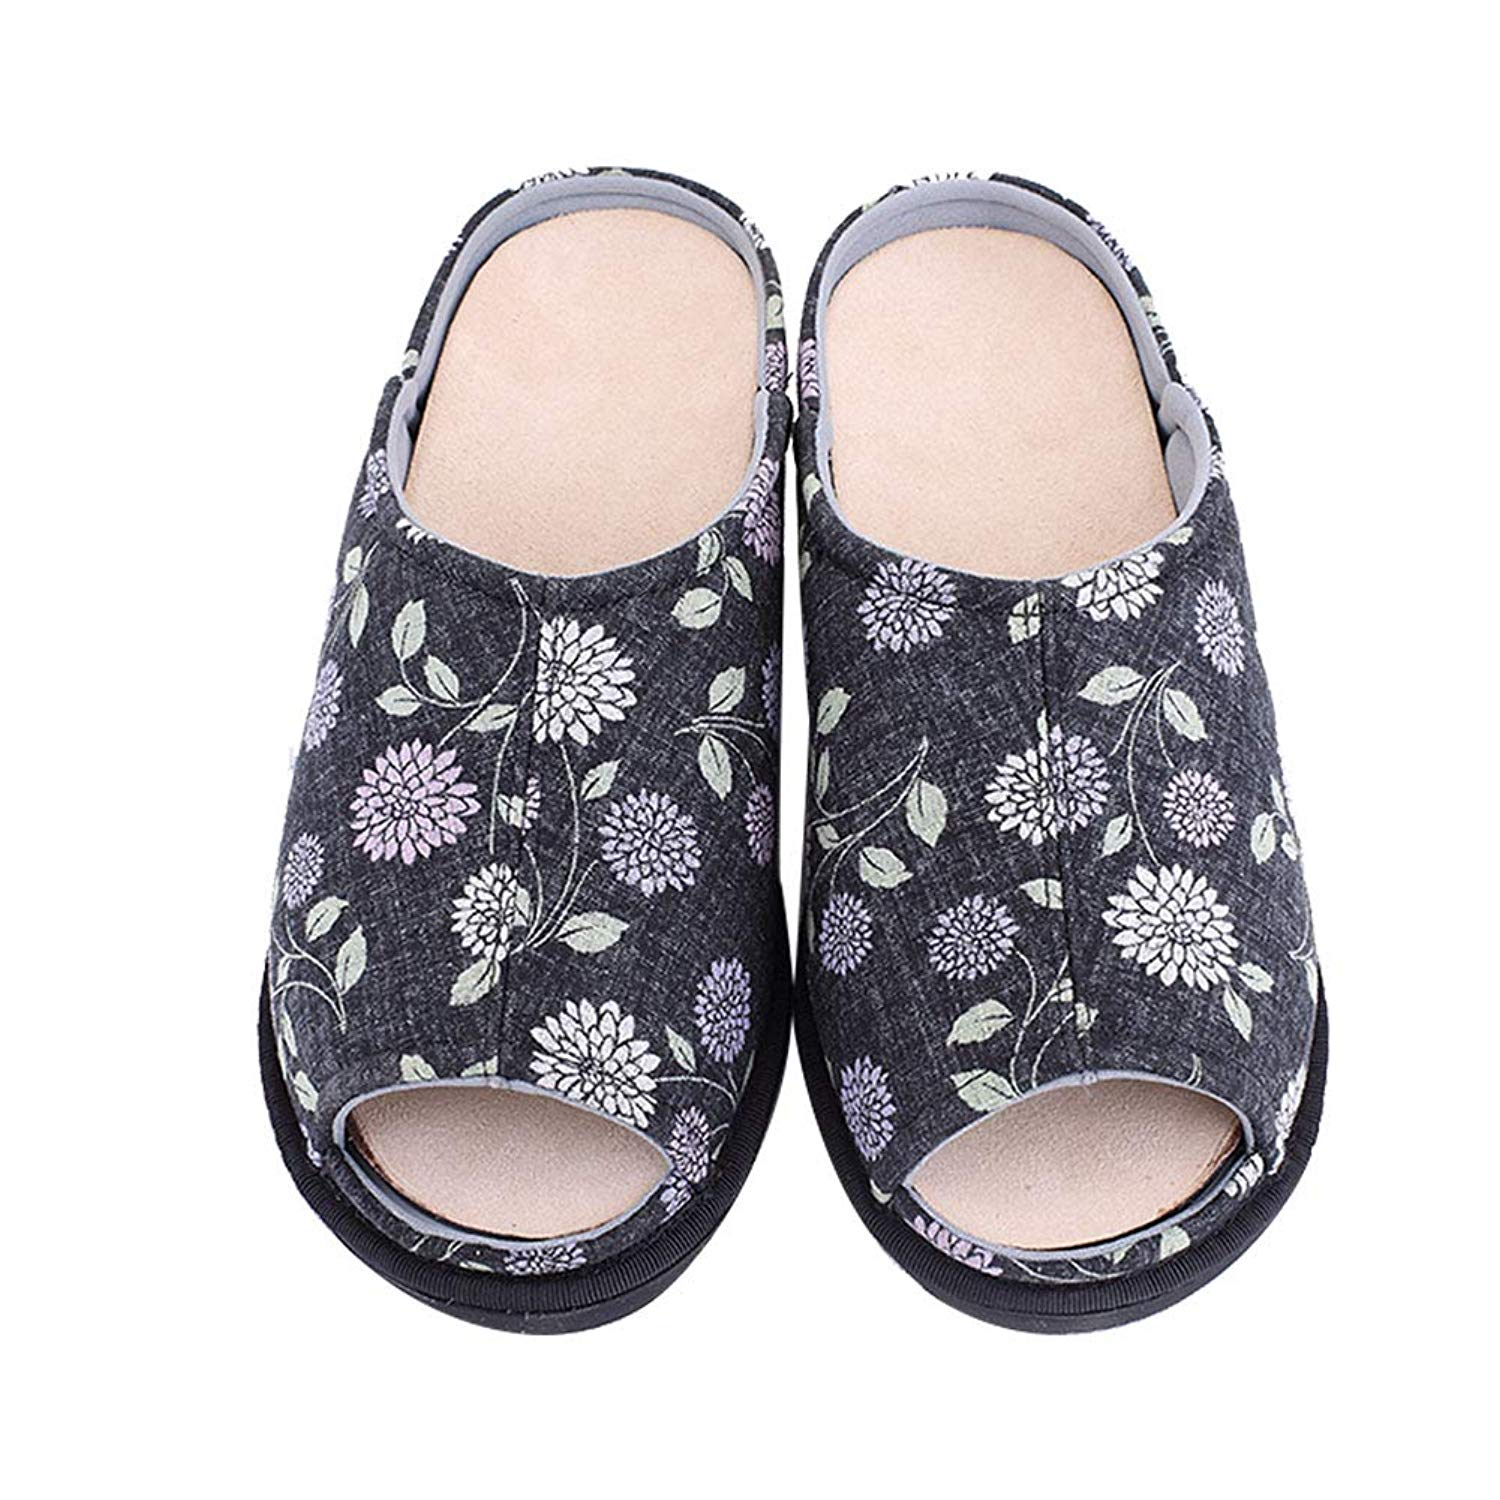 0a879340a421 Get Quotations · Women s Extra Extra Wide Slippers